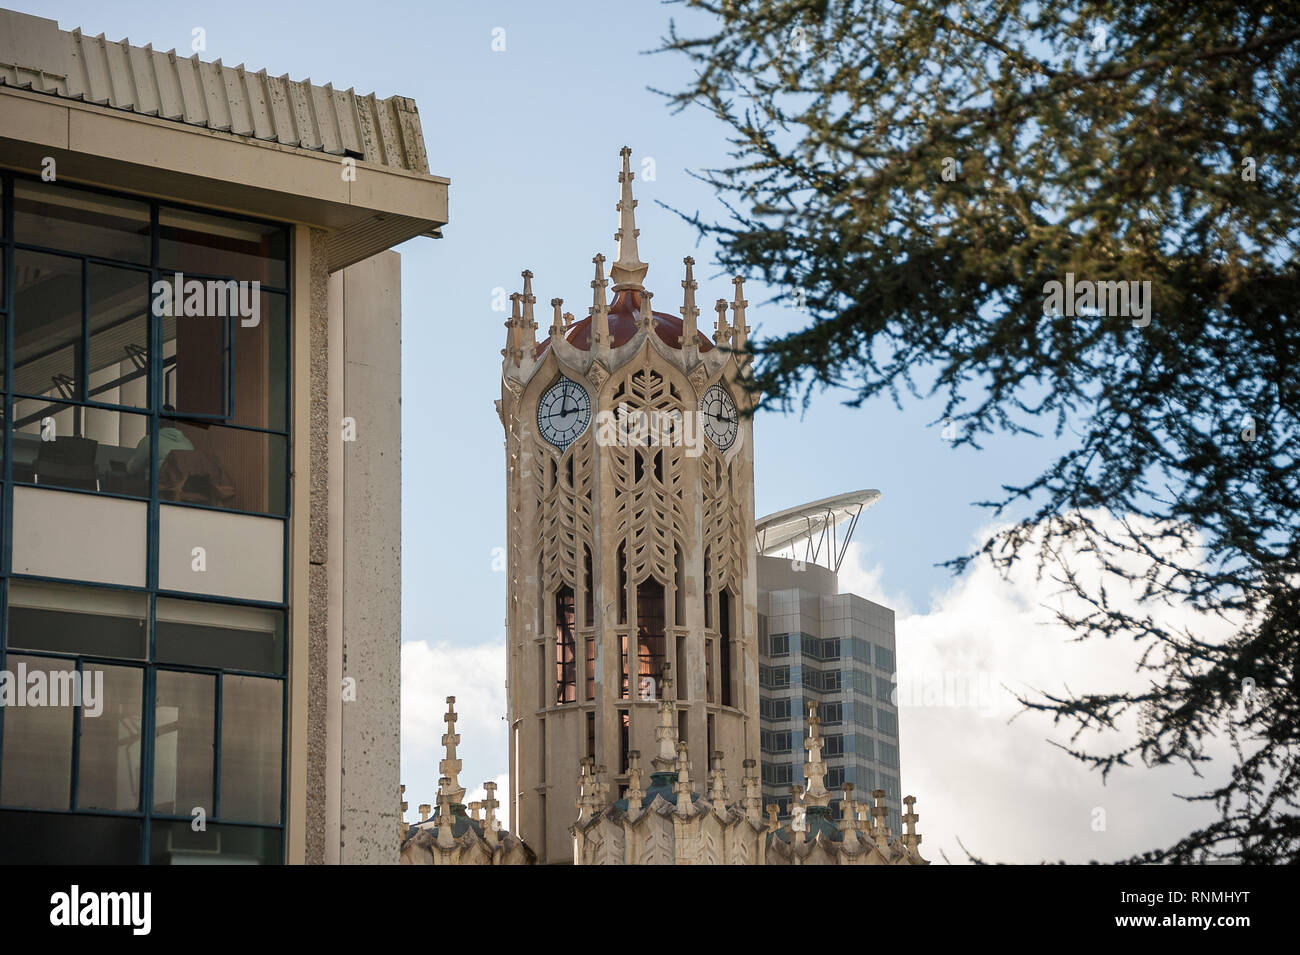 The clock tower and old arts and commerce building at the University of Auckland. View with trees and blue sky background. Stock Photo